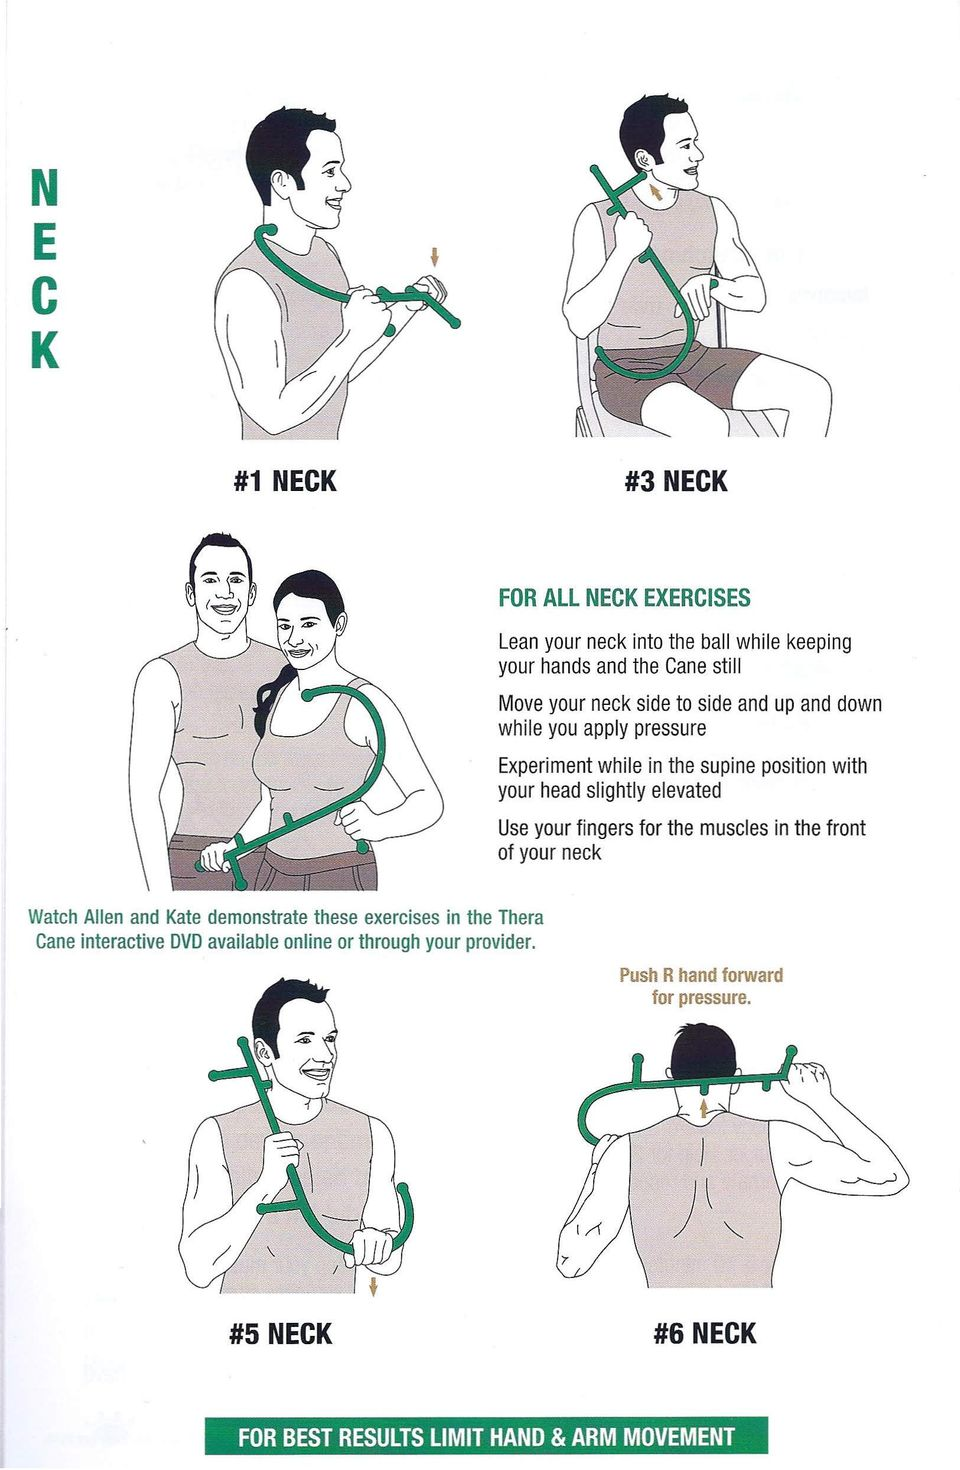 your fingers for the muscles in the front of your neck Watch Allen and Kate demonstrate these exercises in the Thera Cane interactive